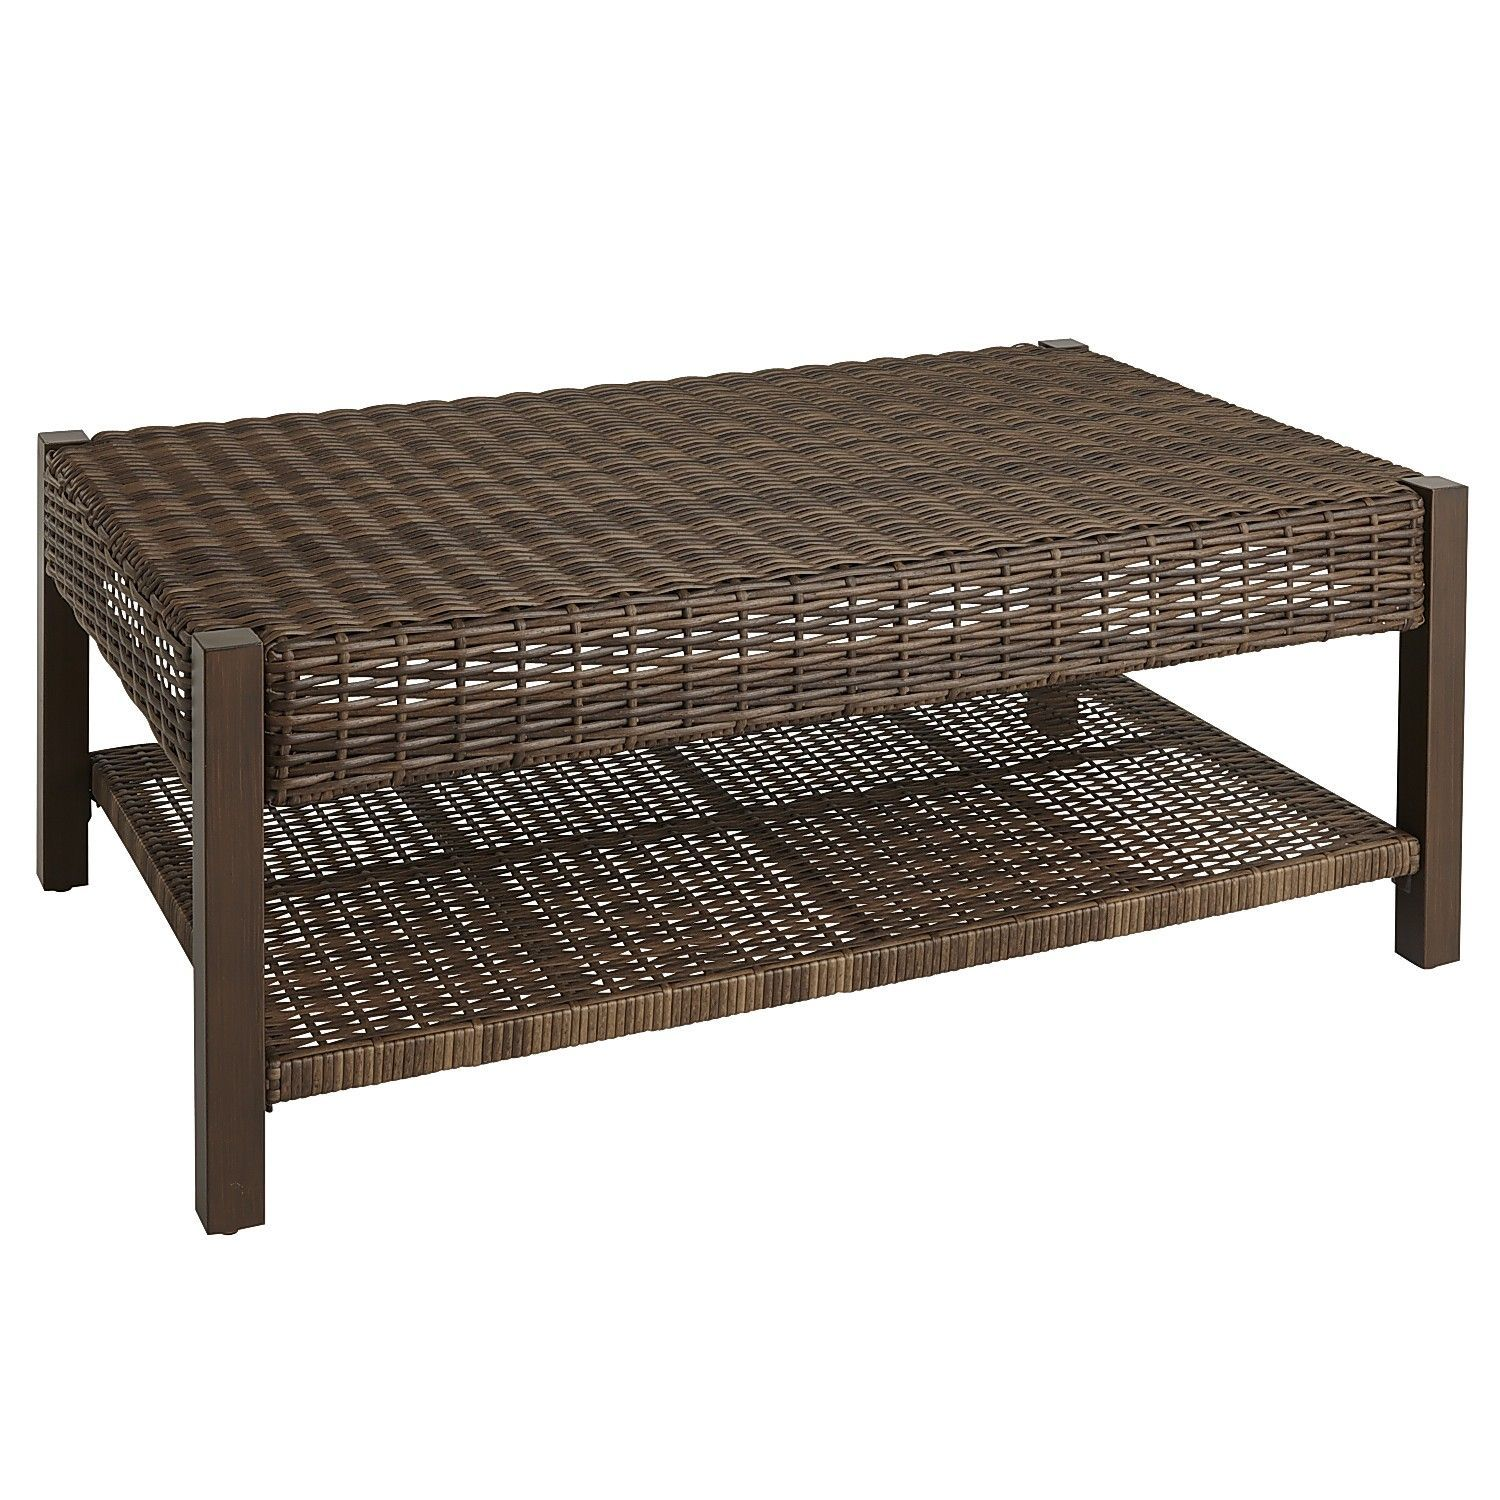 Echo Beach Coffee Table Latte Pier 1 Imports With Images